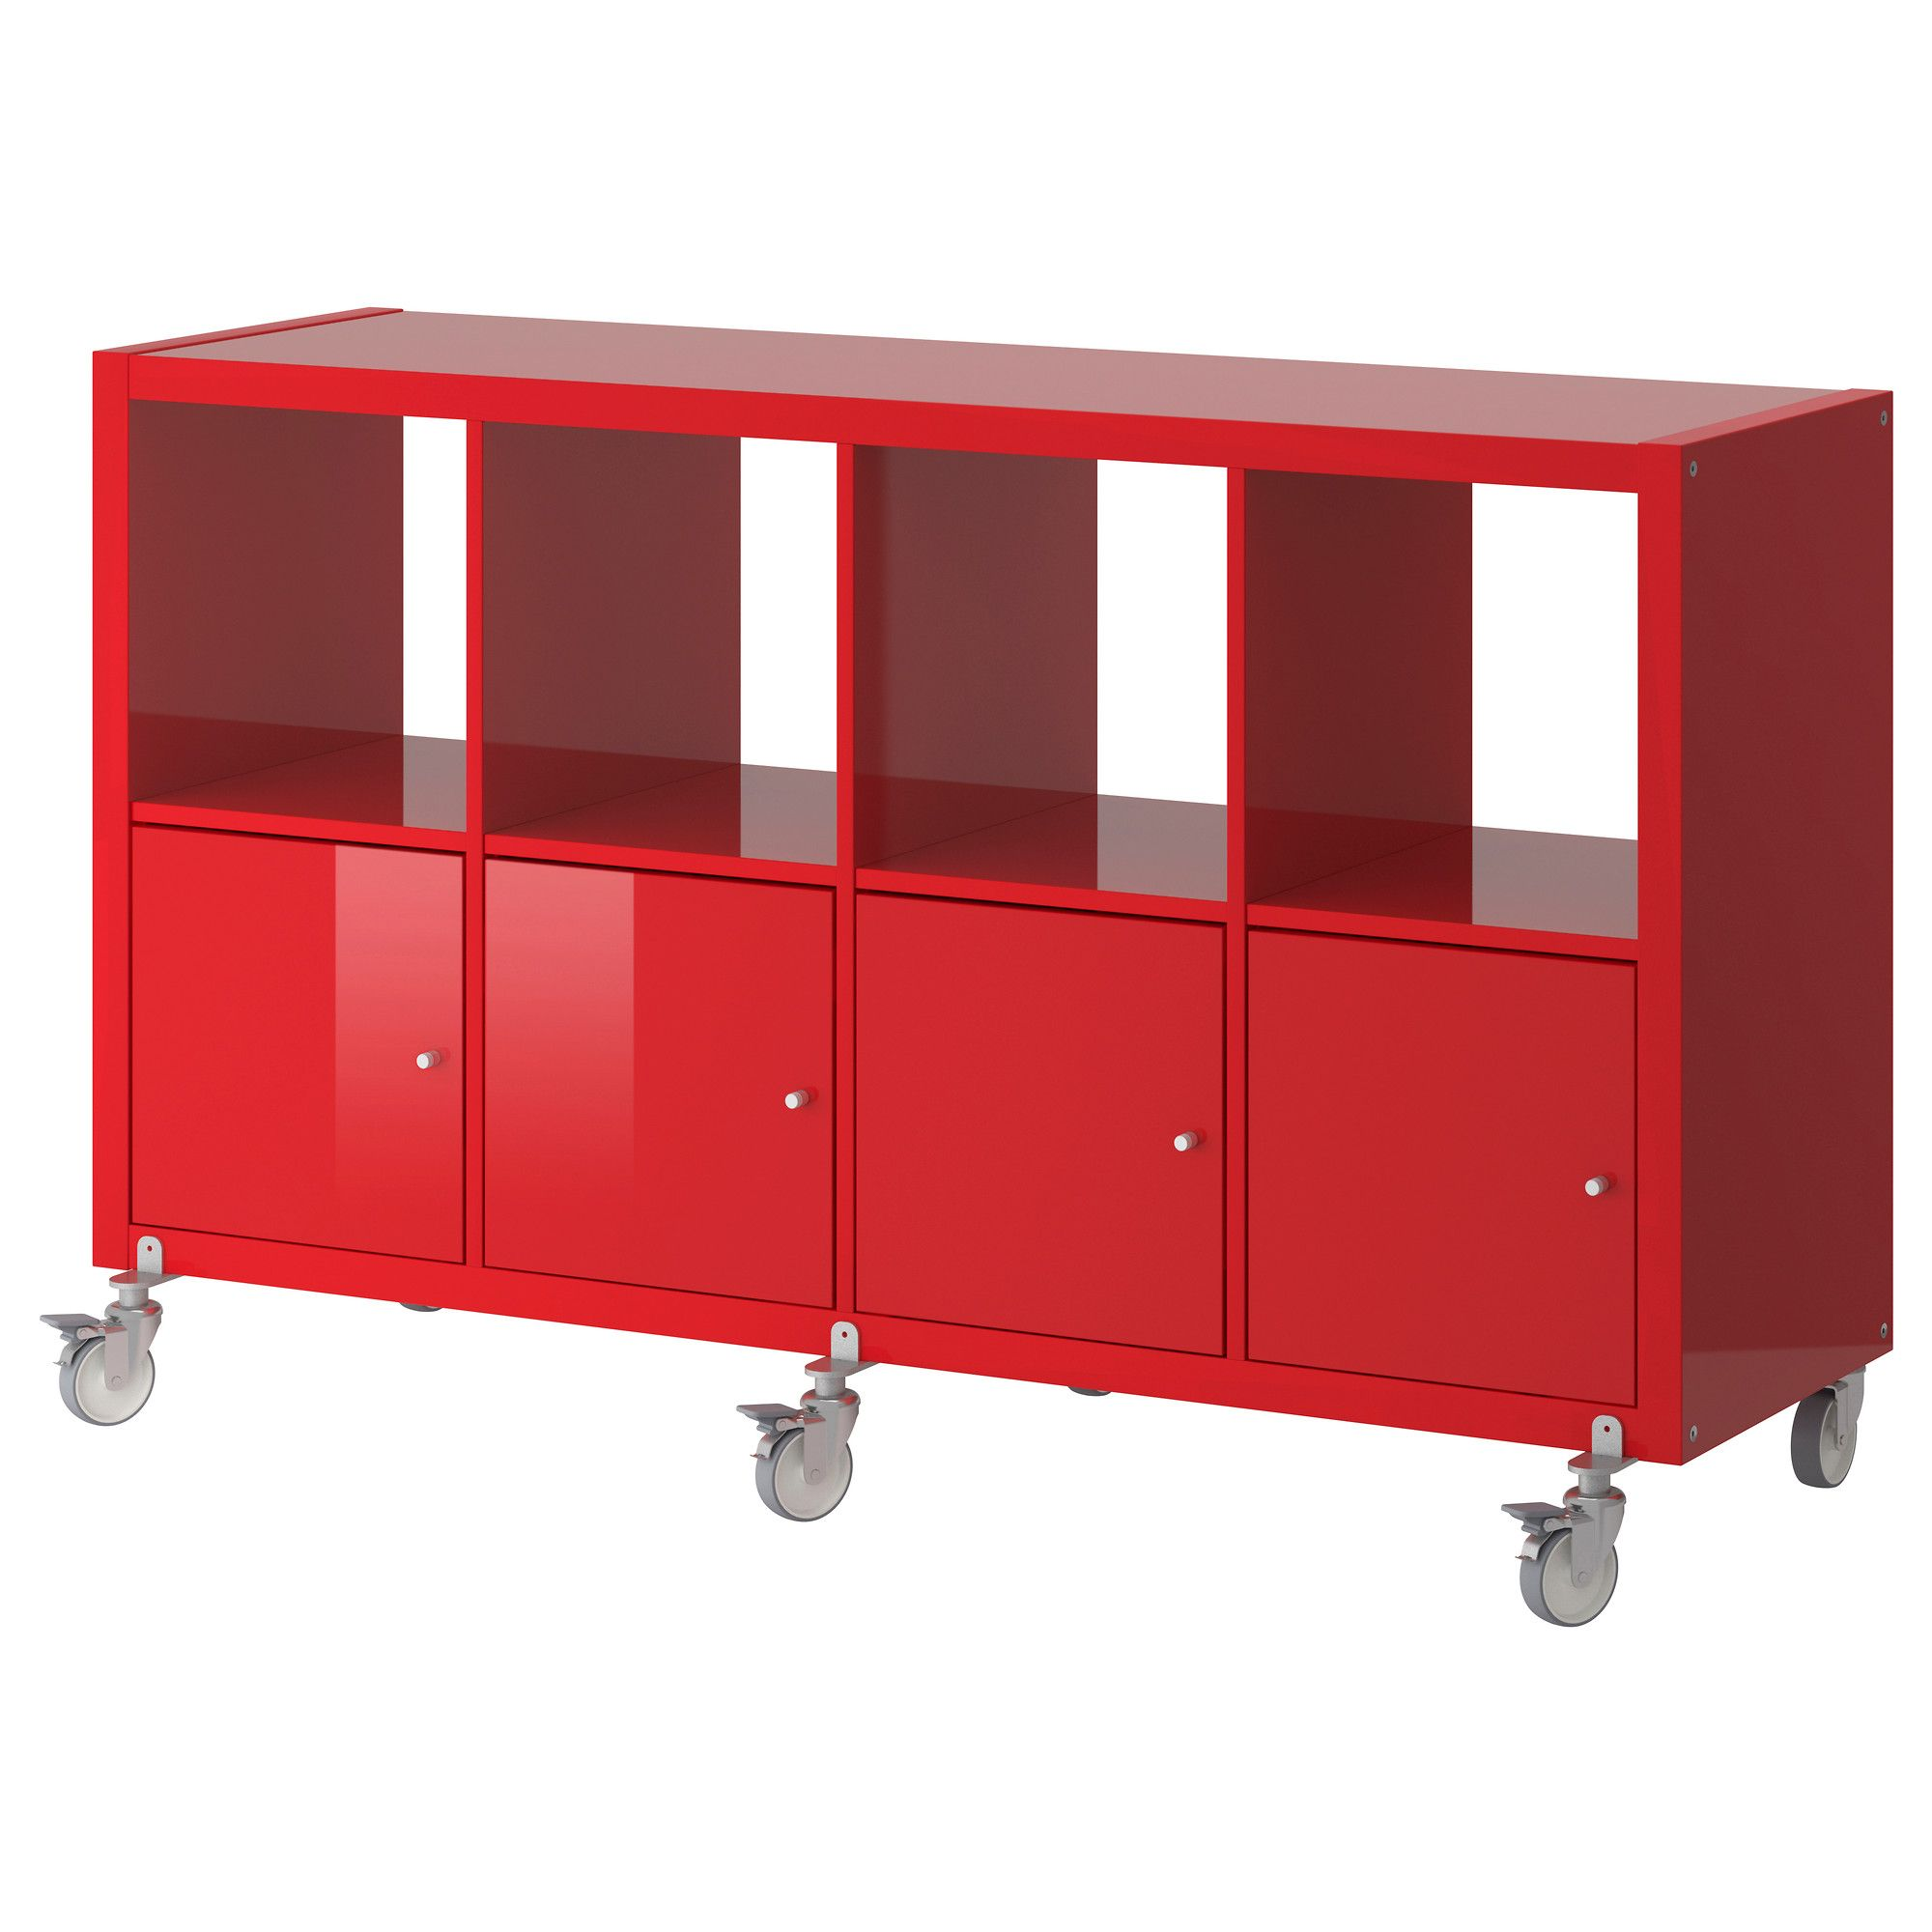 Ikea Rote Küchenfront Kallax Shelf Unit On Casters With 4 Doors High Gloss Red Ikea